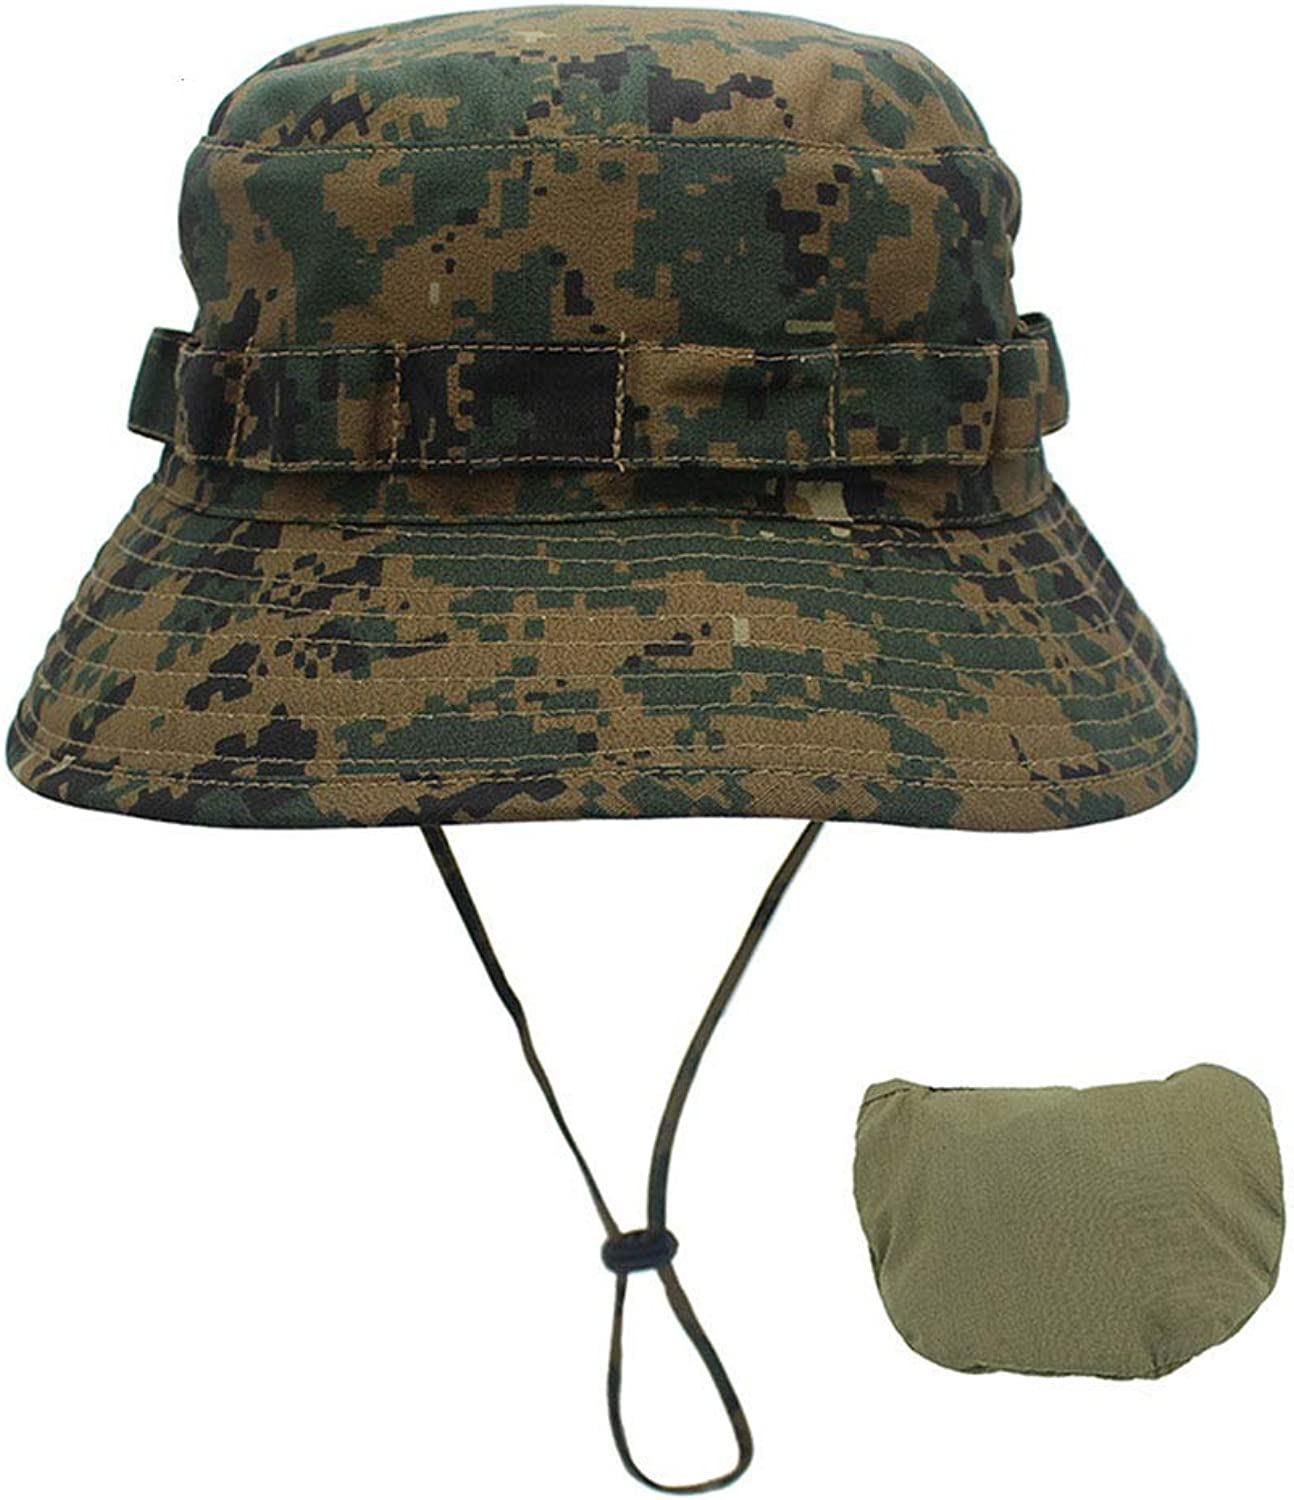 Digital Camouflage Small Basin Hat Outdoor Camping Men's Fisherman Hat Wholesale Sunscreen Bionic Jungle Cap,I